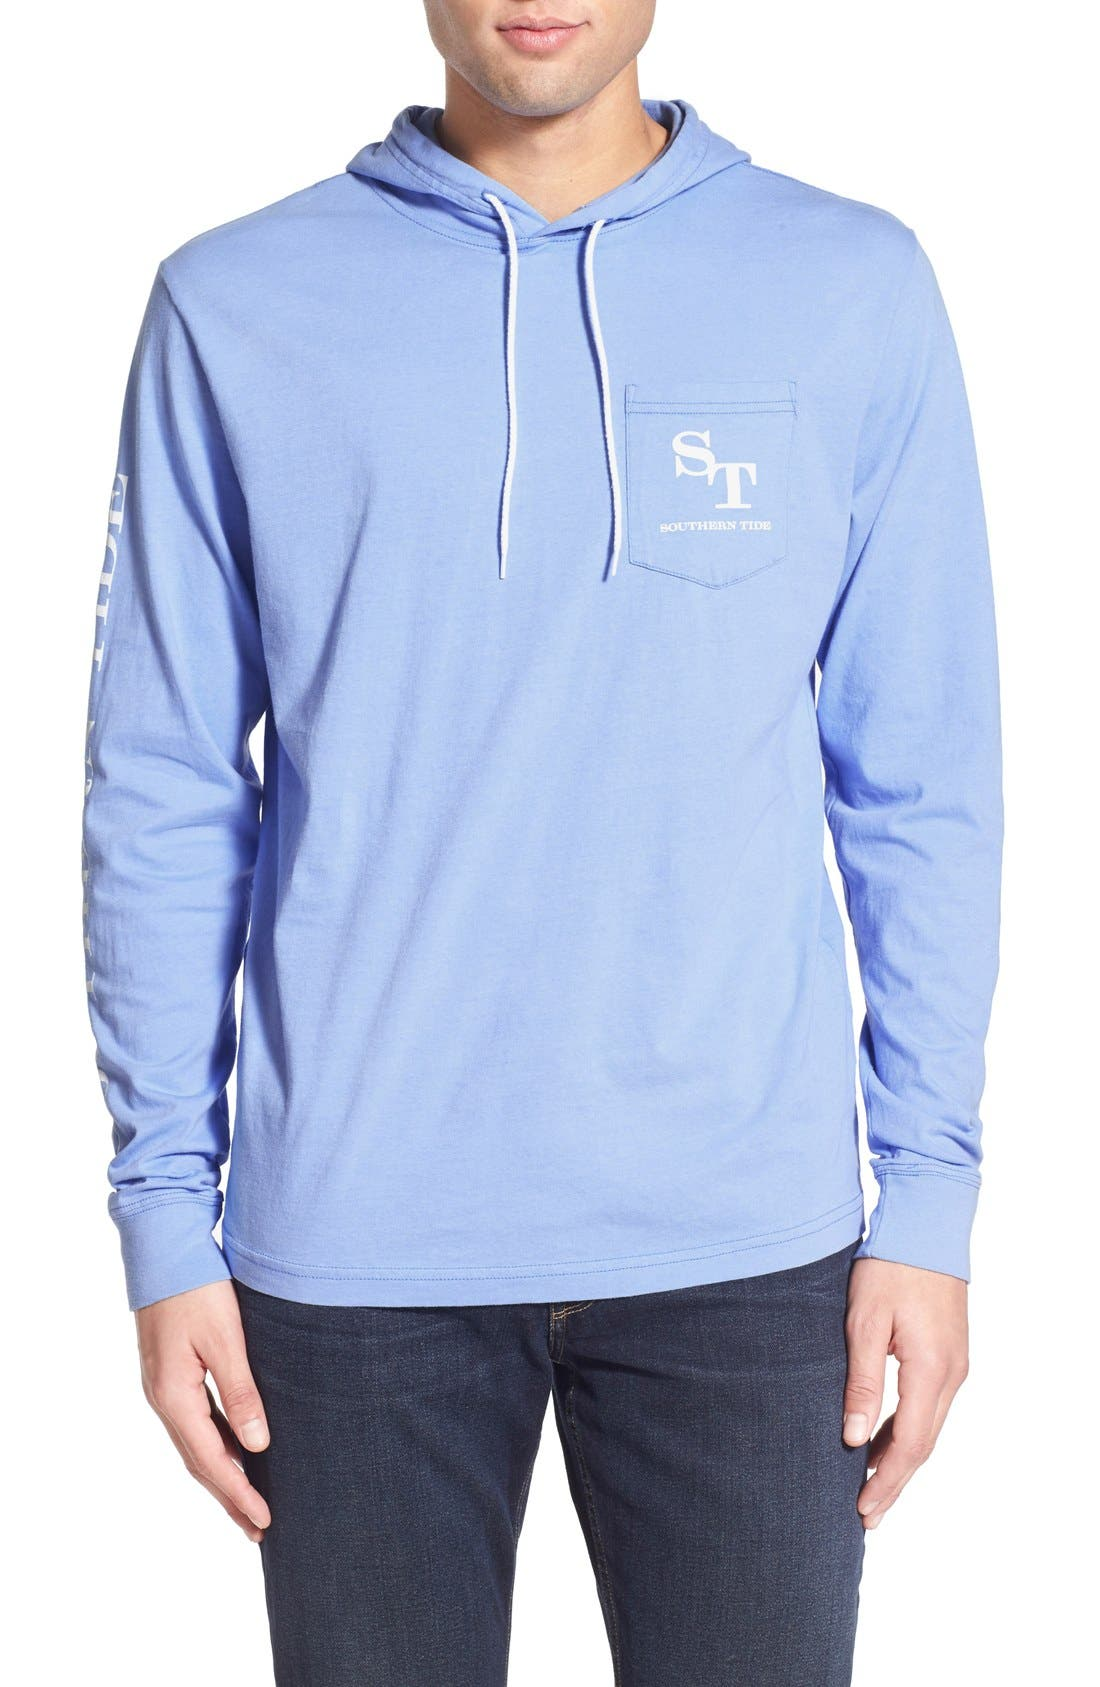 Southern Tide Graphic Hooded Long Sleeve T-Shirt